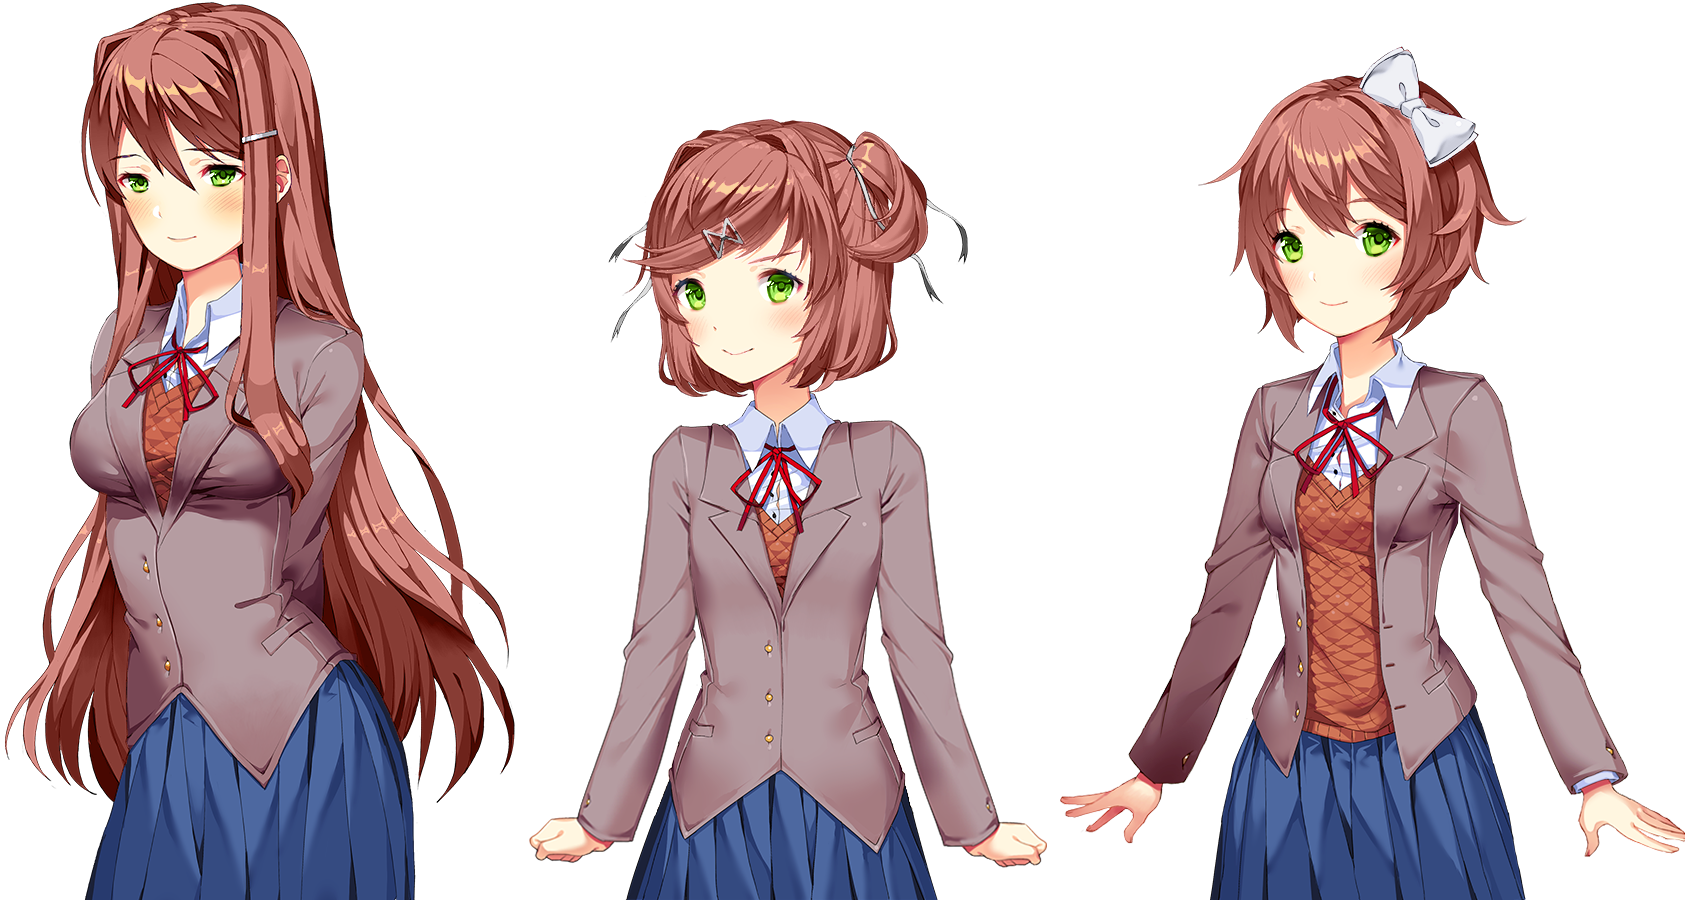 Just monika png. What if everyone had